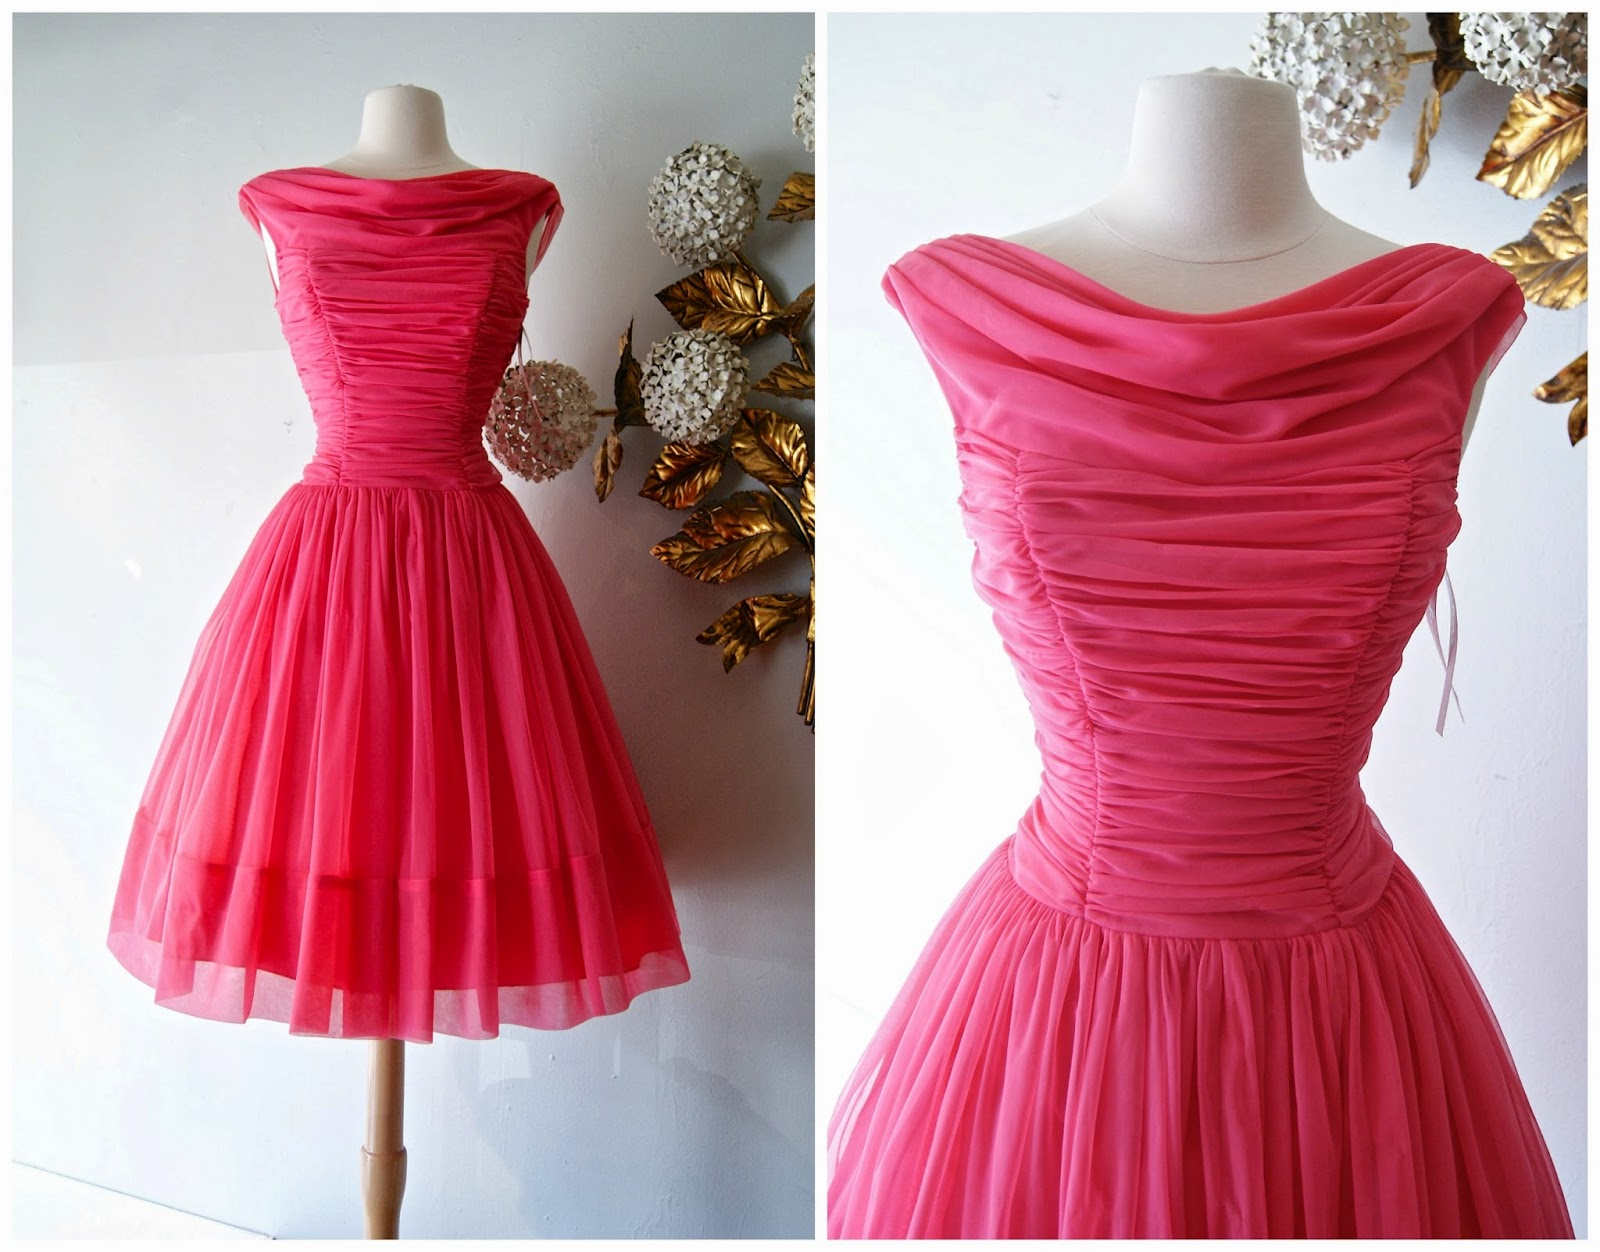 53c49533eb4 Fabulous late 50 s shocking pink party dress is available to purchase HERE.